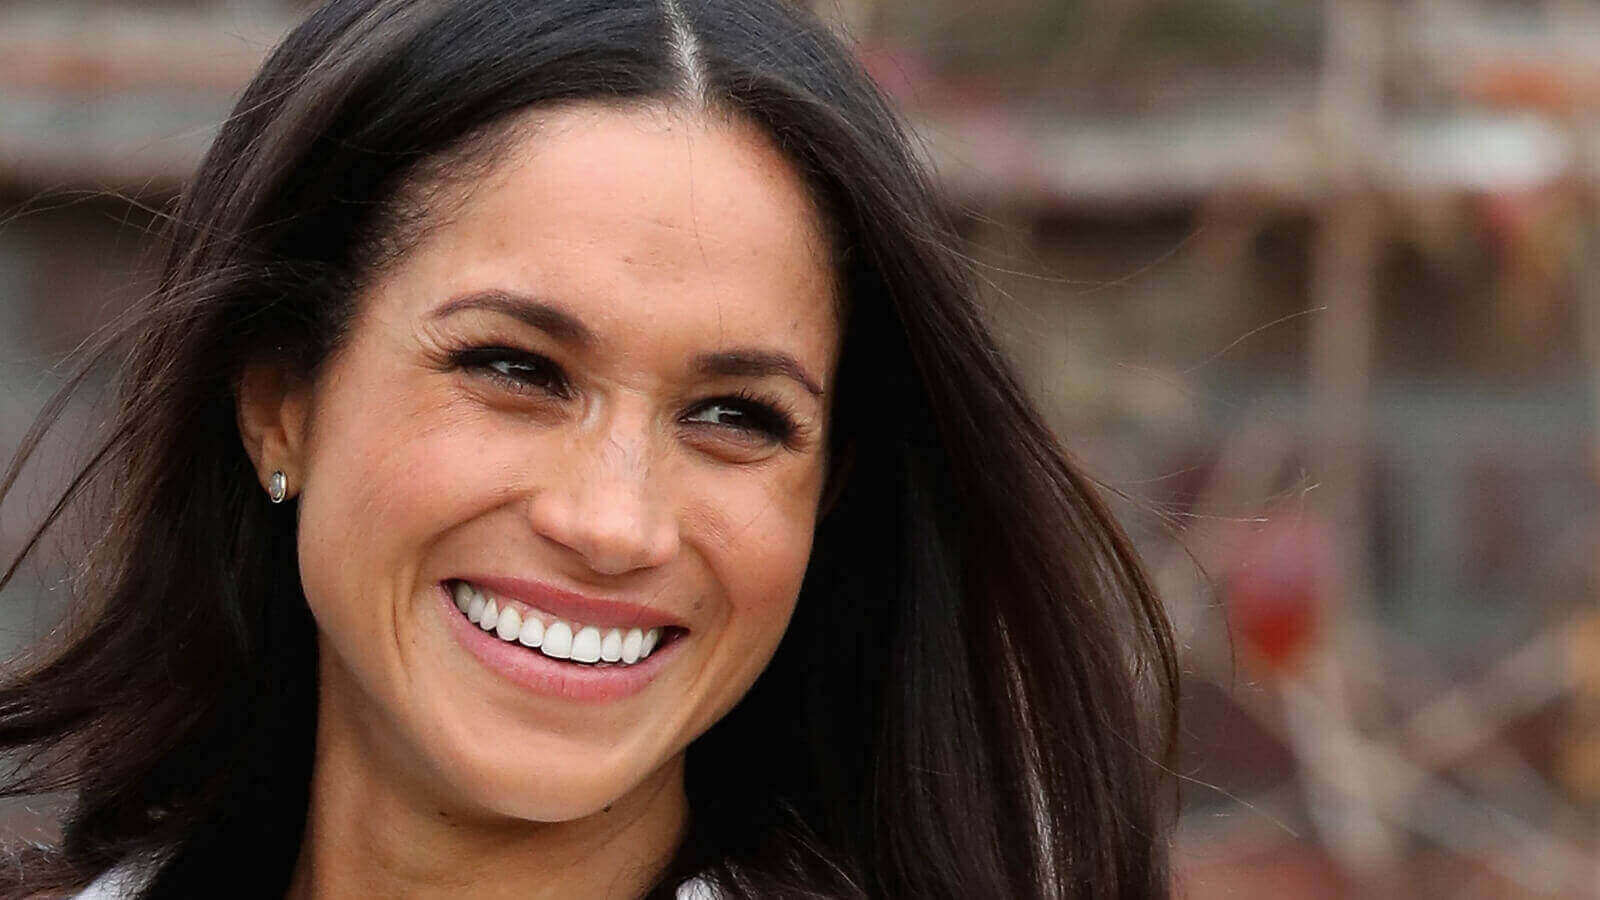 10 royal pregnancy rules meghan markle needs to follow